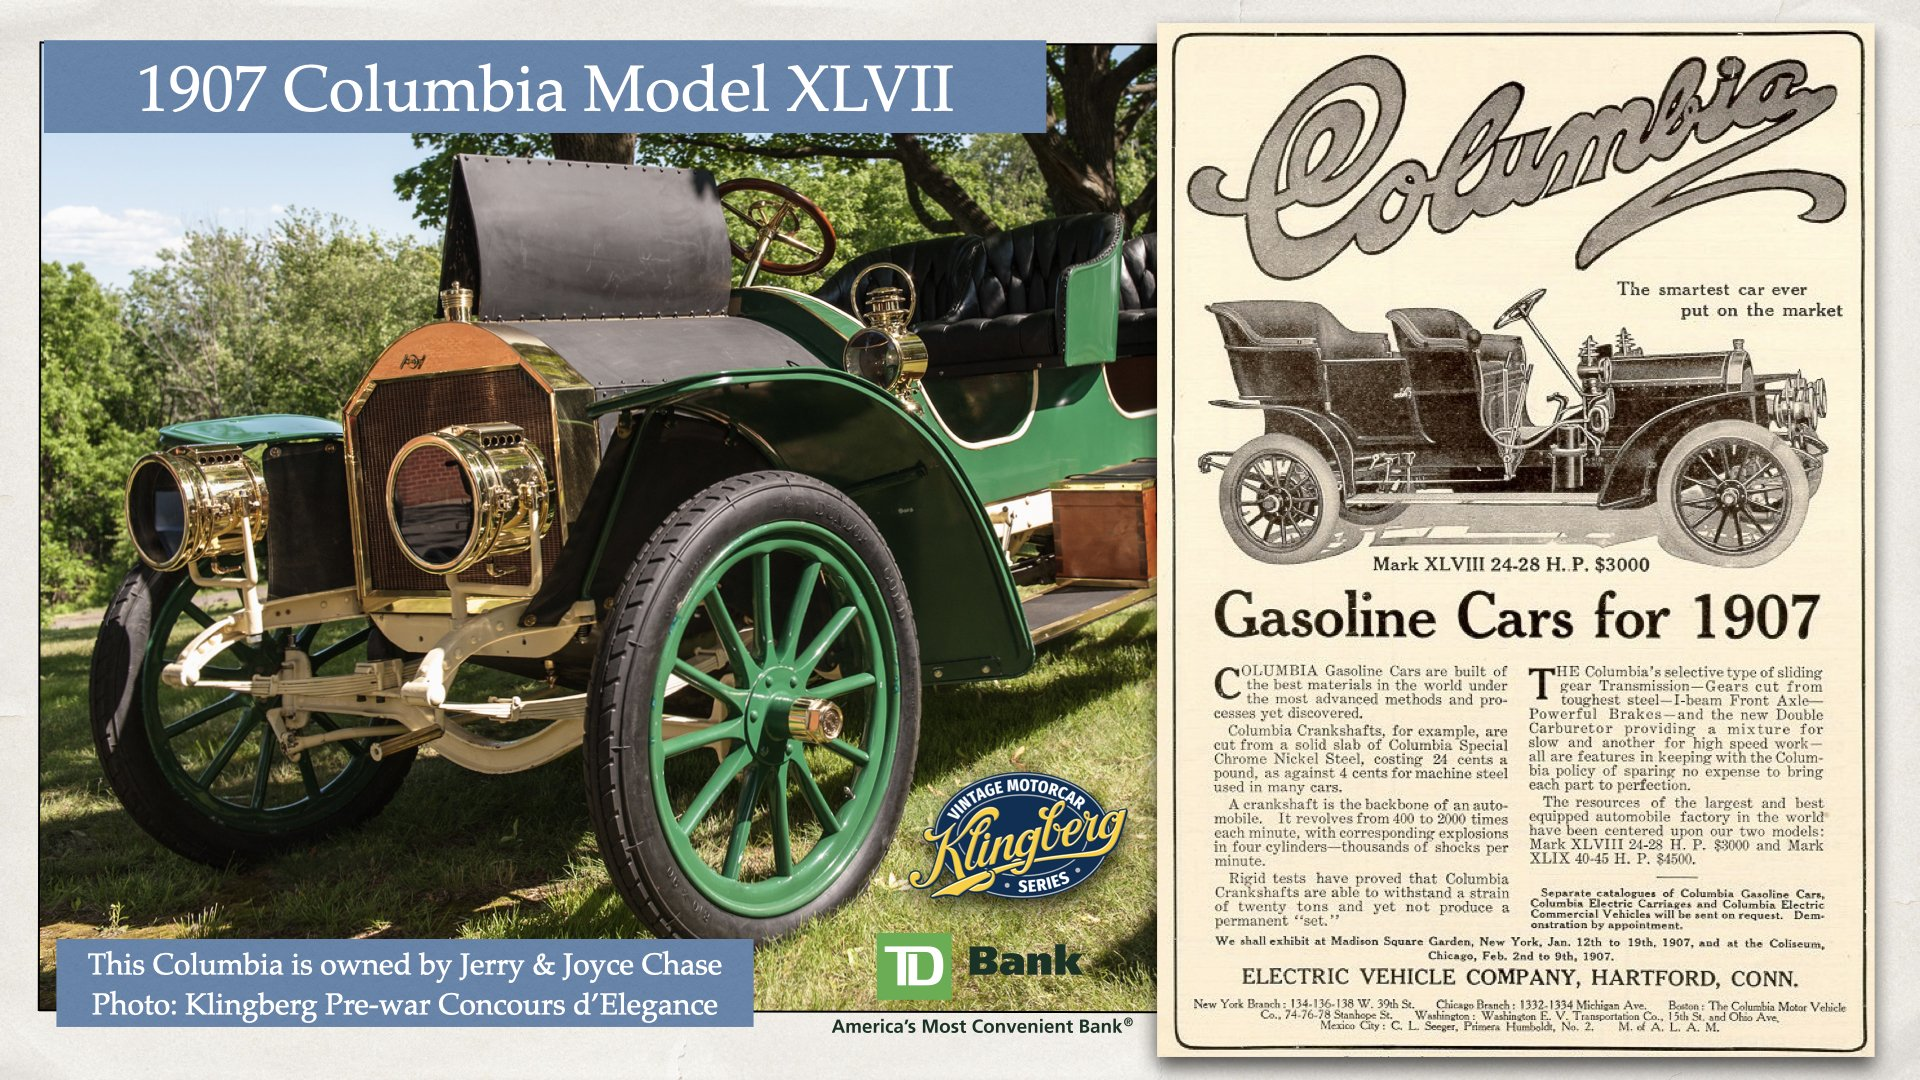 1907 Columbia Mark XLVII